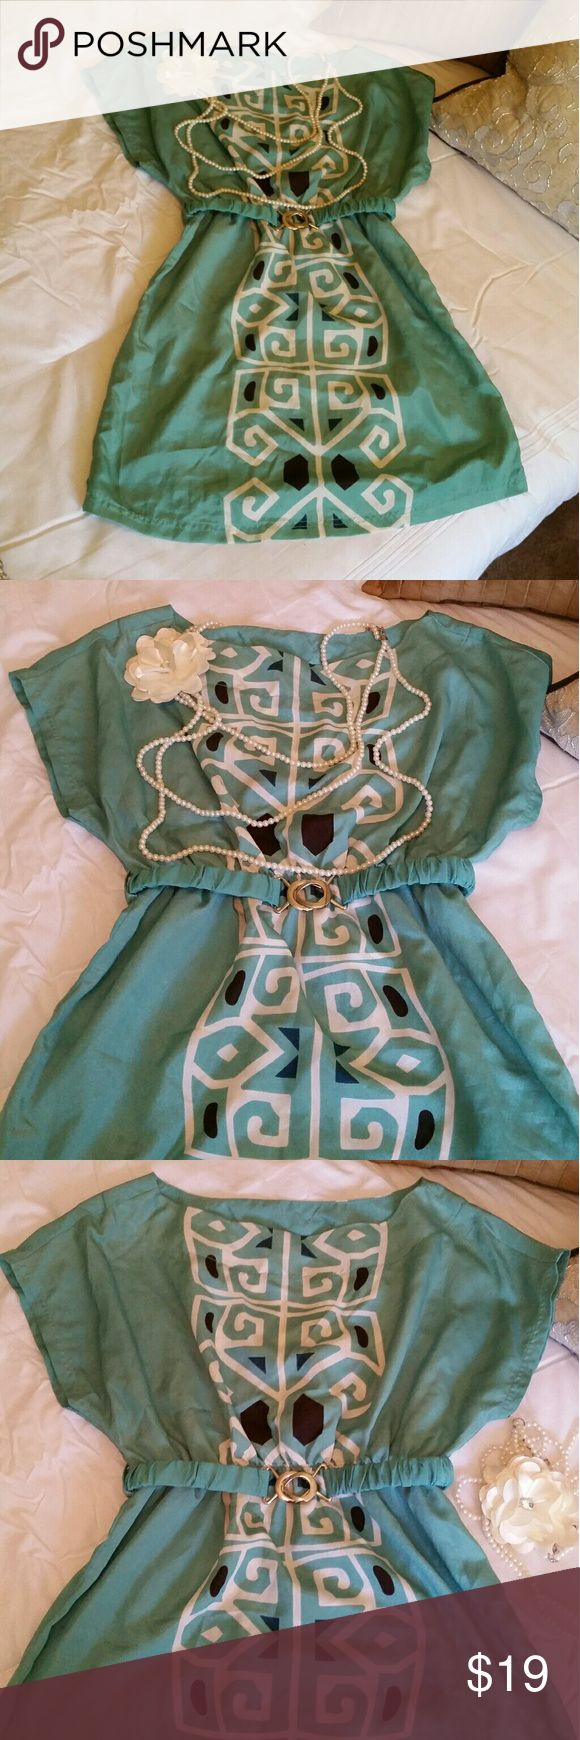 Aztec Print Green Belted Charlotte Russe Dress Charlotte Russe green Aztec print dress with matching belt. Light & airy for summer. Size small. Charlotte Russe Dresses Mini